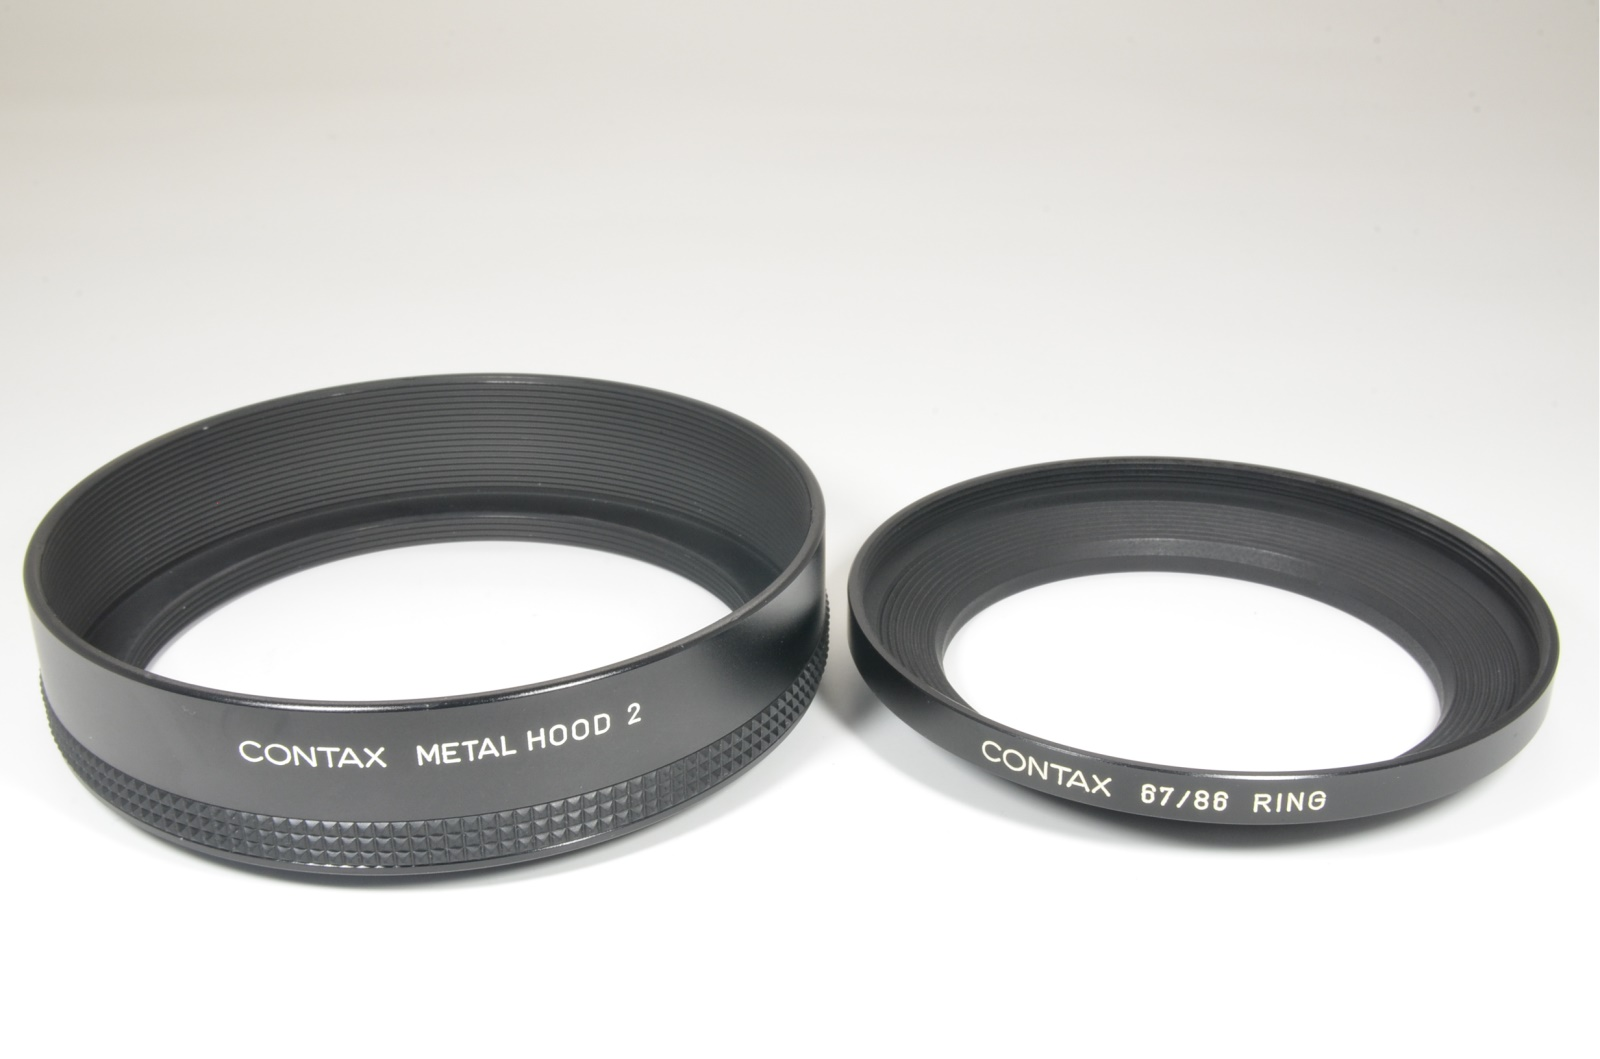 contax carl zeiss distagon t* 35mm f1.4 mmg germany & lens hoods shooting tested